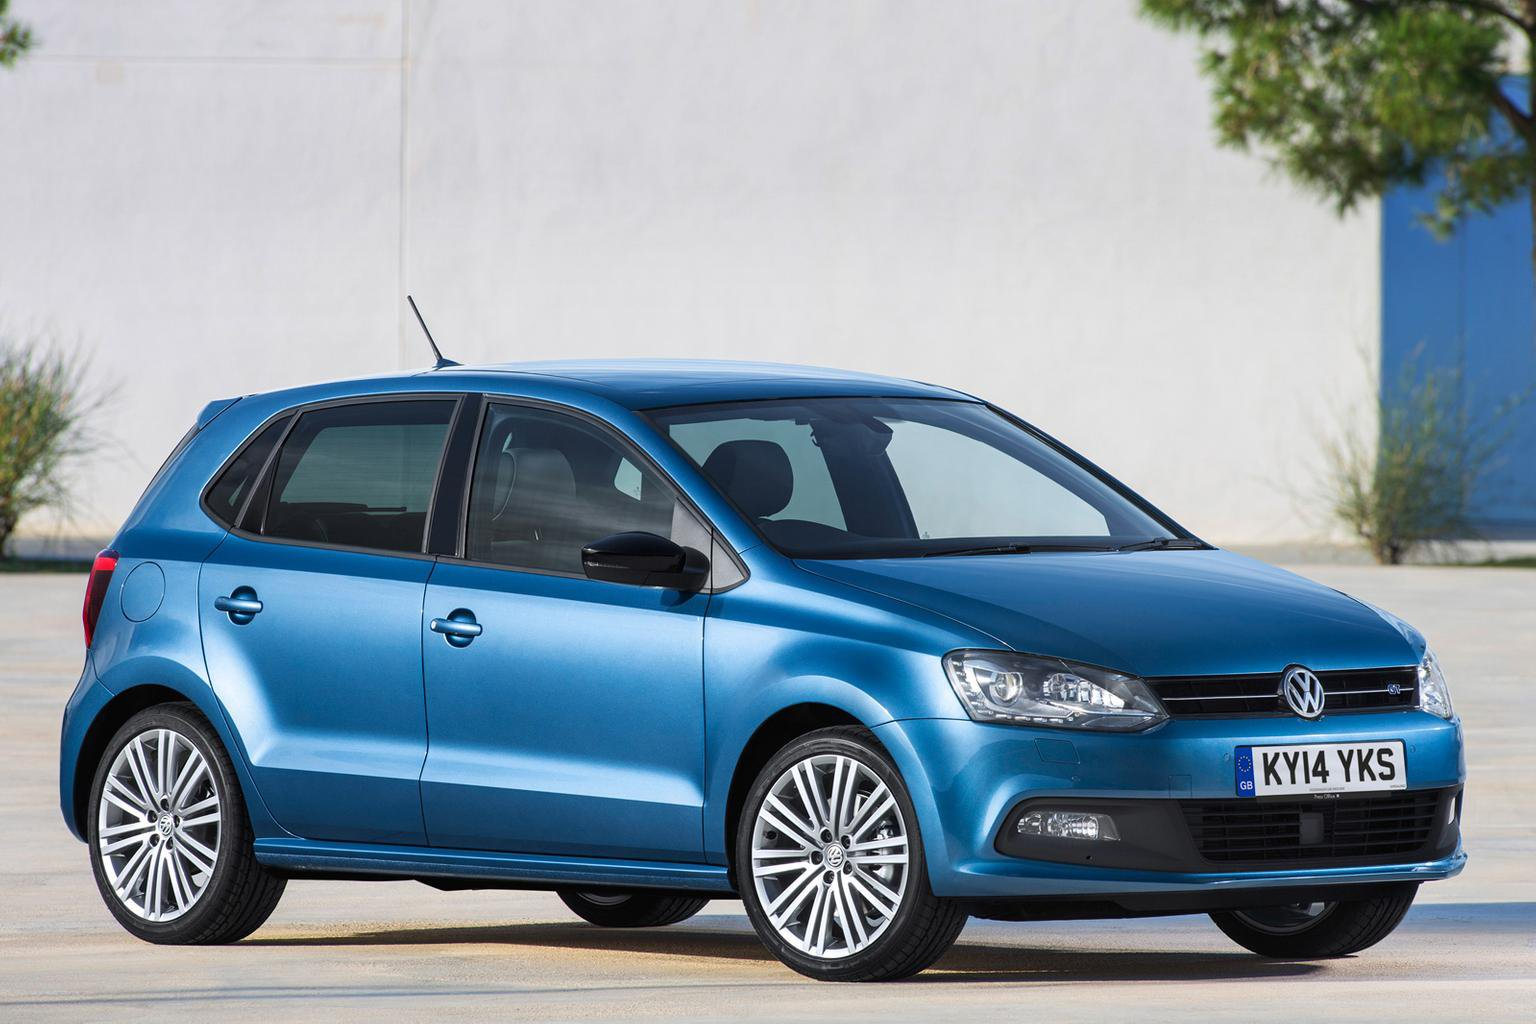 2014 Volkswagen Polo - all you need to know